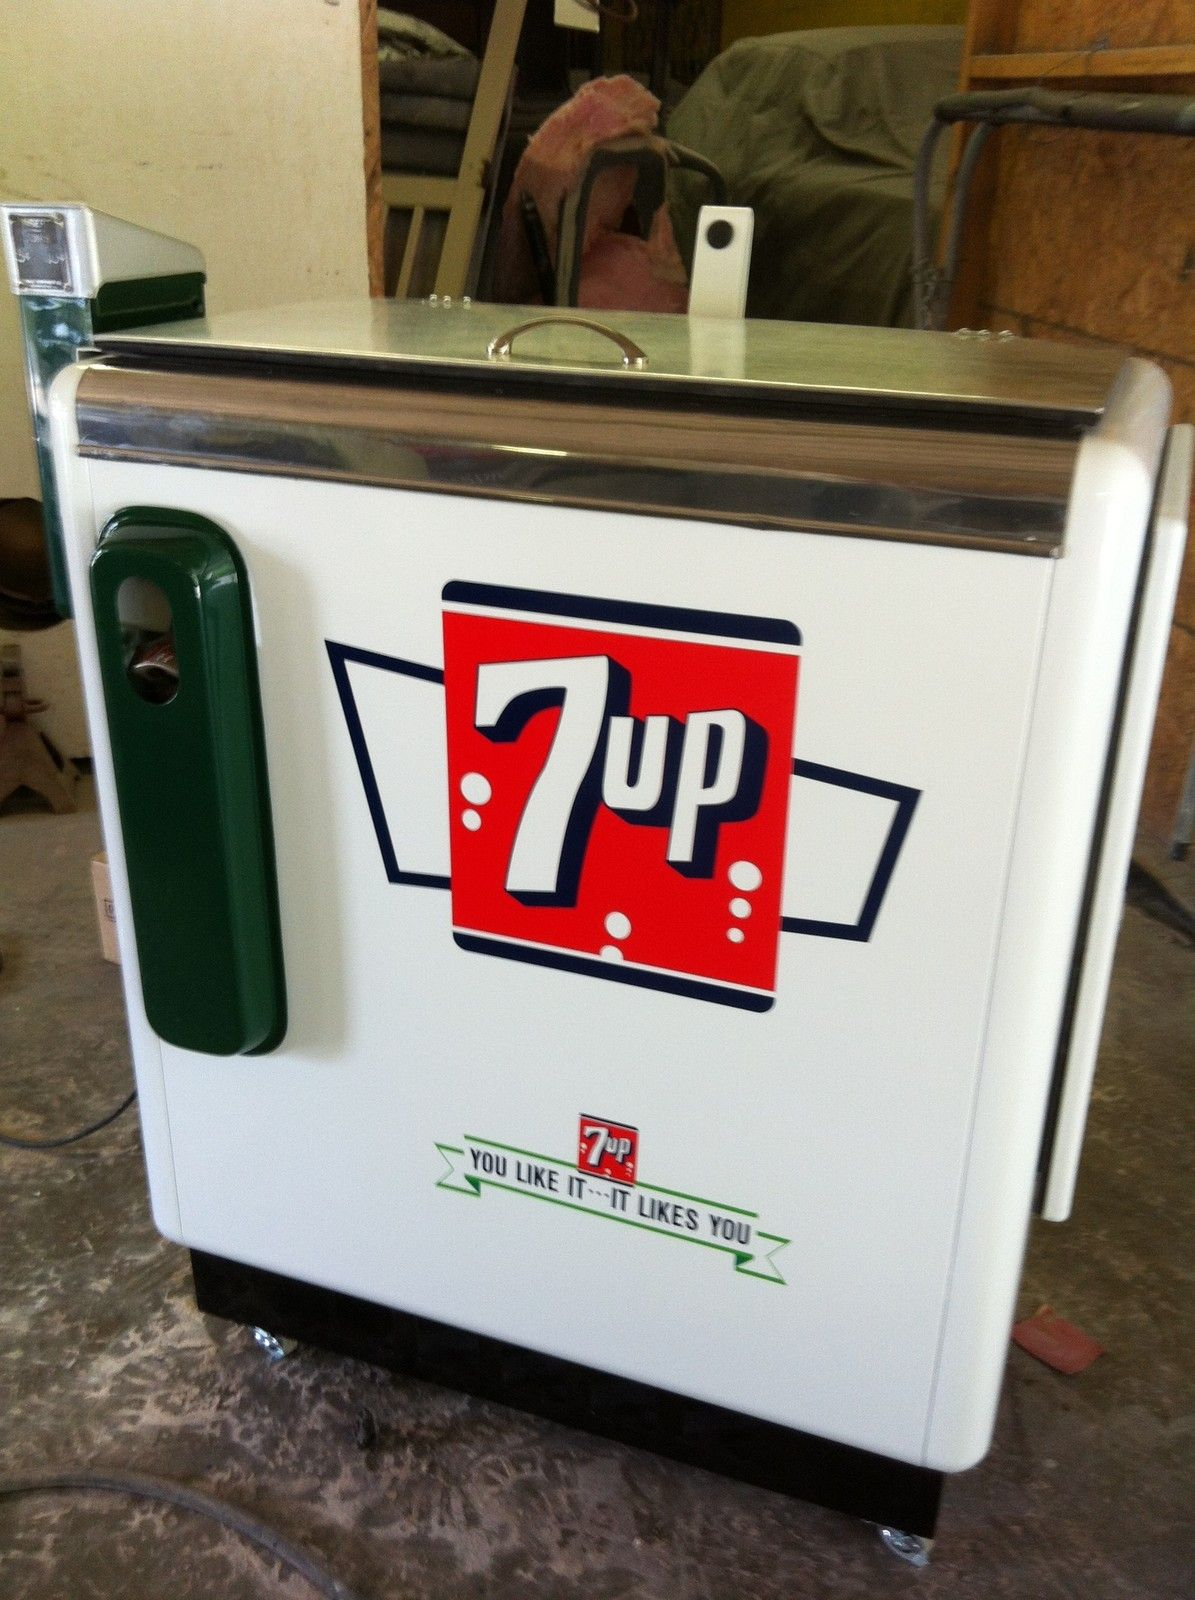 Ideal 55 Slider Coke Machine Restored 7up | eBay | Coke ...